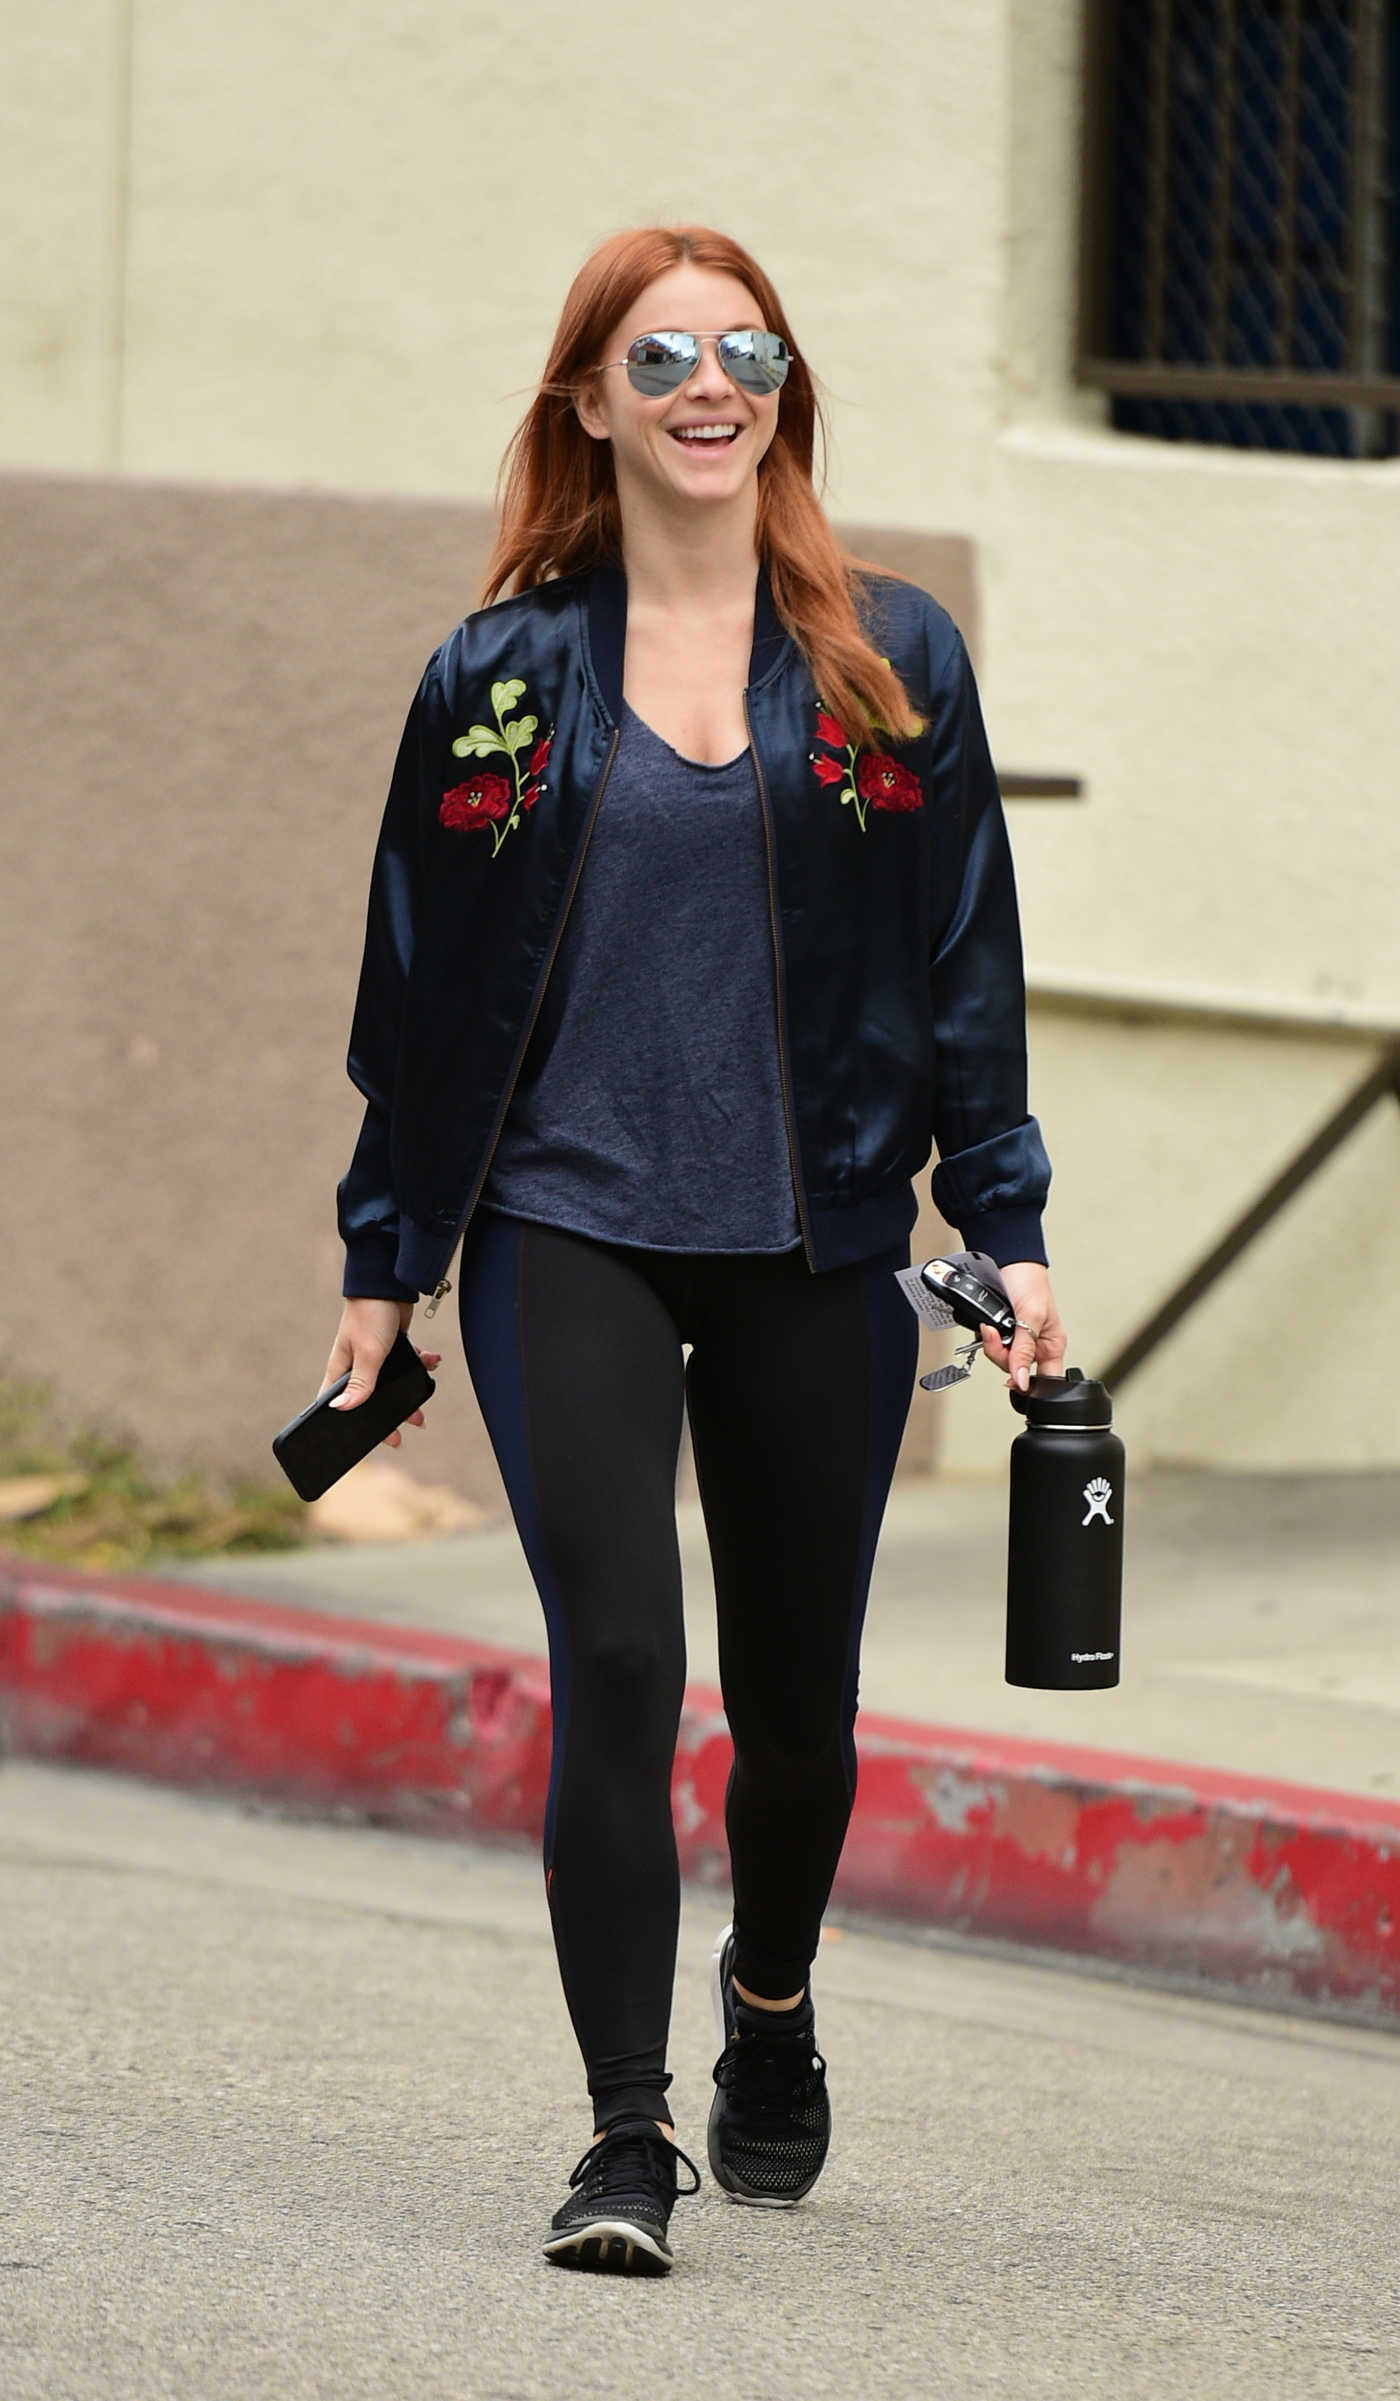 Julianne Hough Wears an Embroidered Blue Satin Jacket Out in LA 04/30/2018